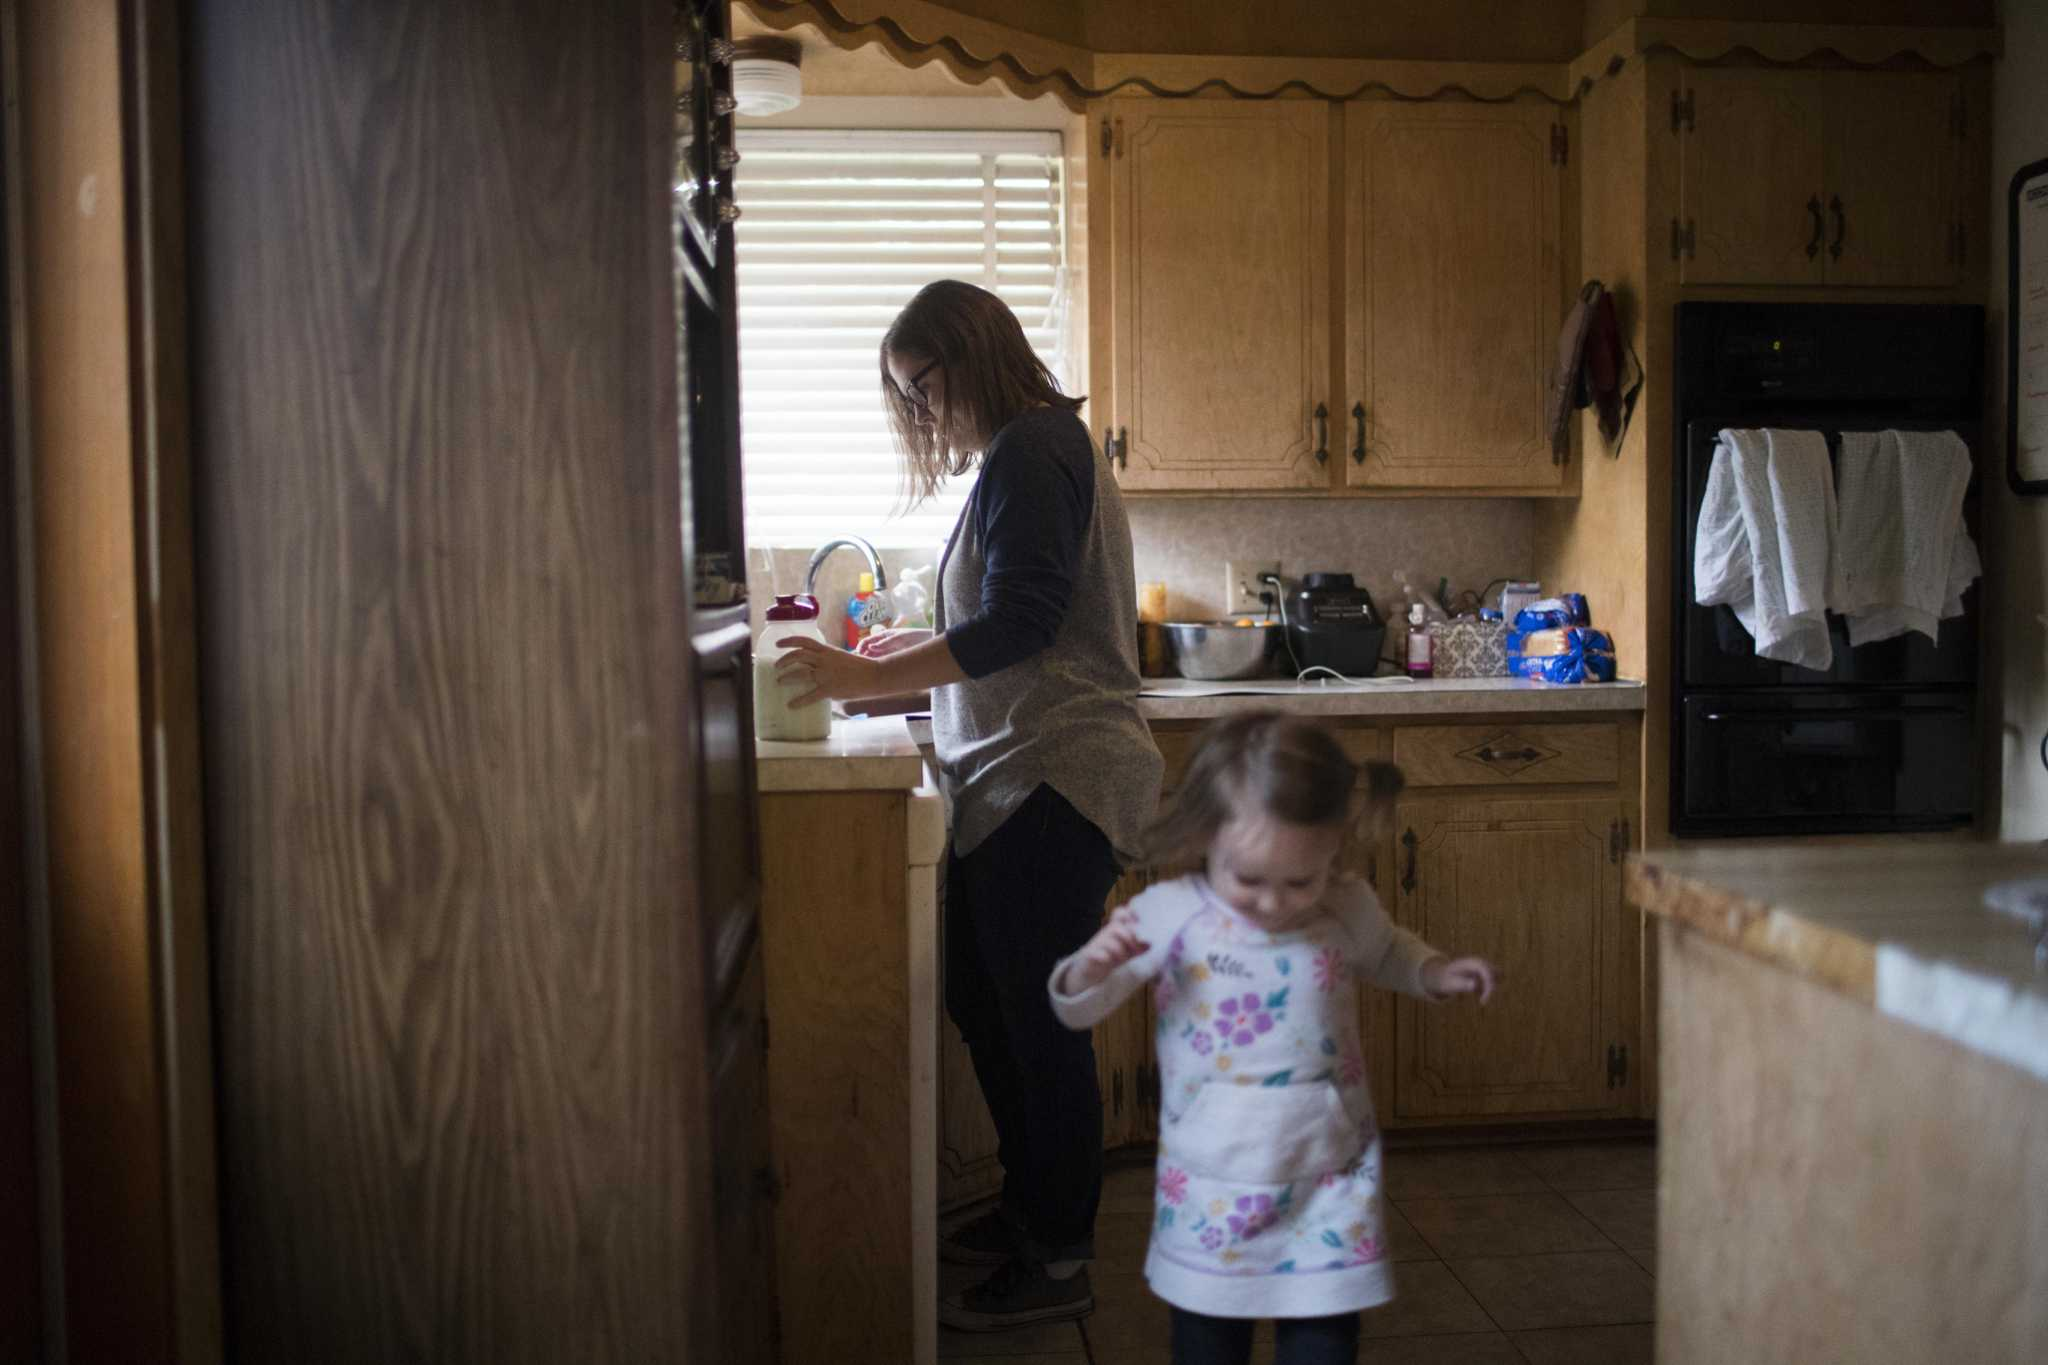 Texas leads nation in uninsured kids as gains slip away